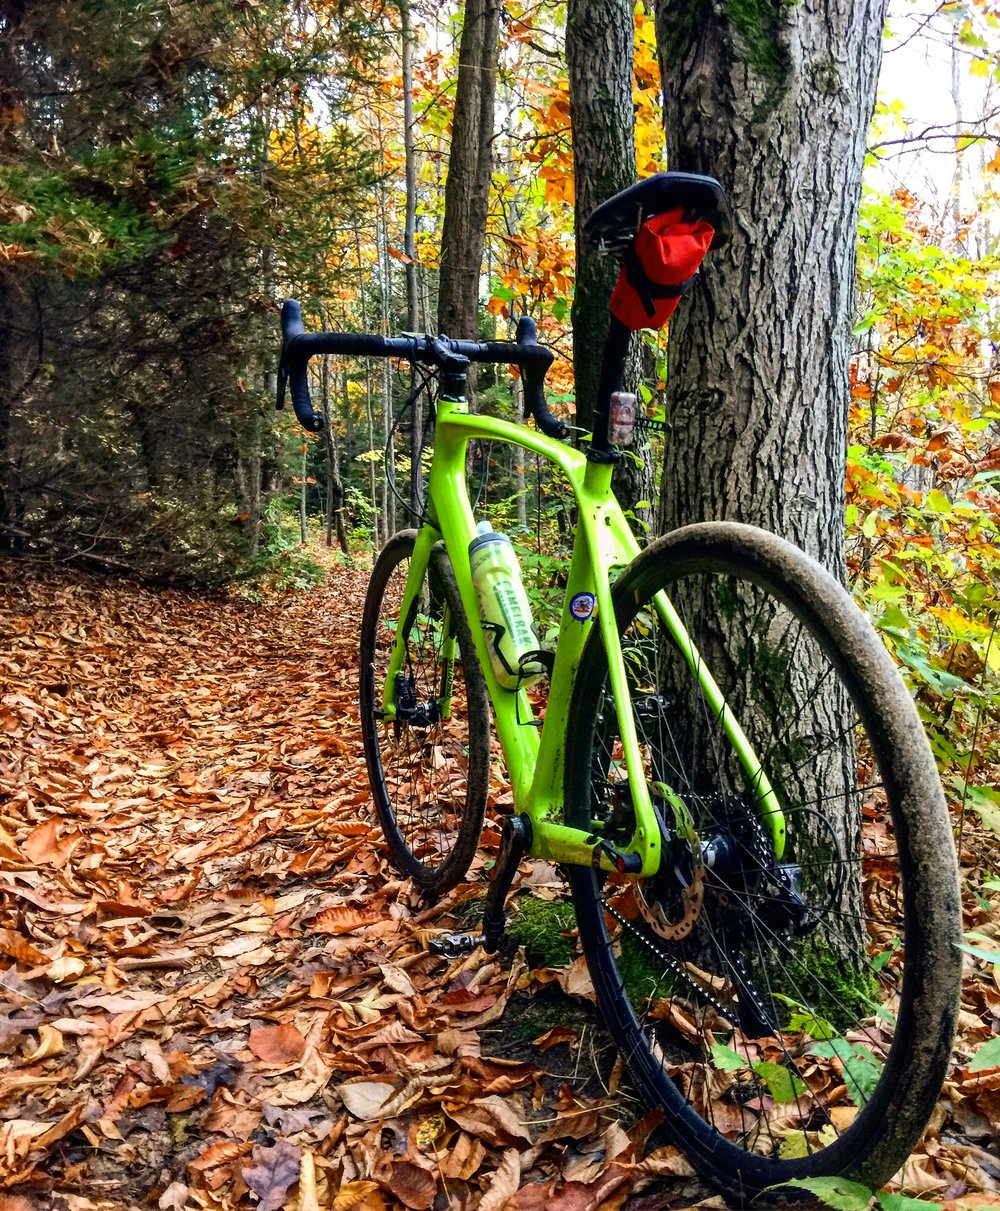 Having some single track fun with the Diverge rolling on slicks last fall...